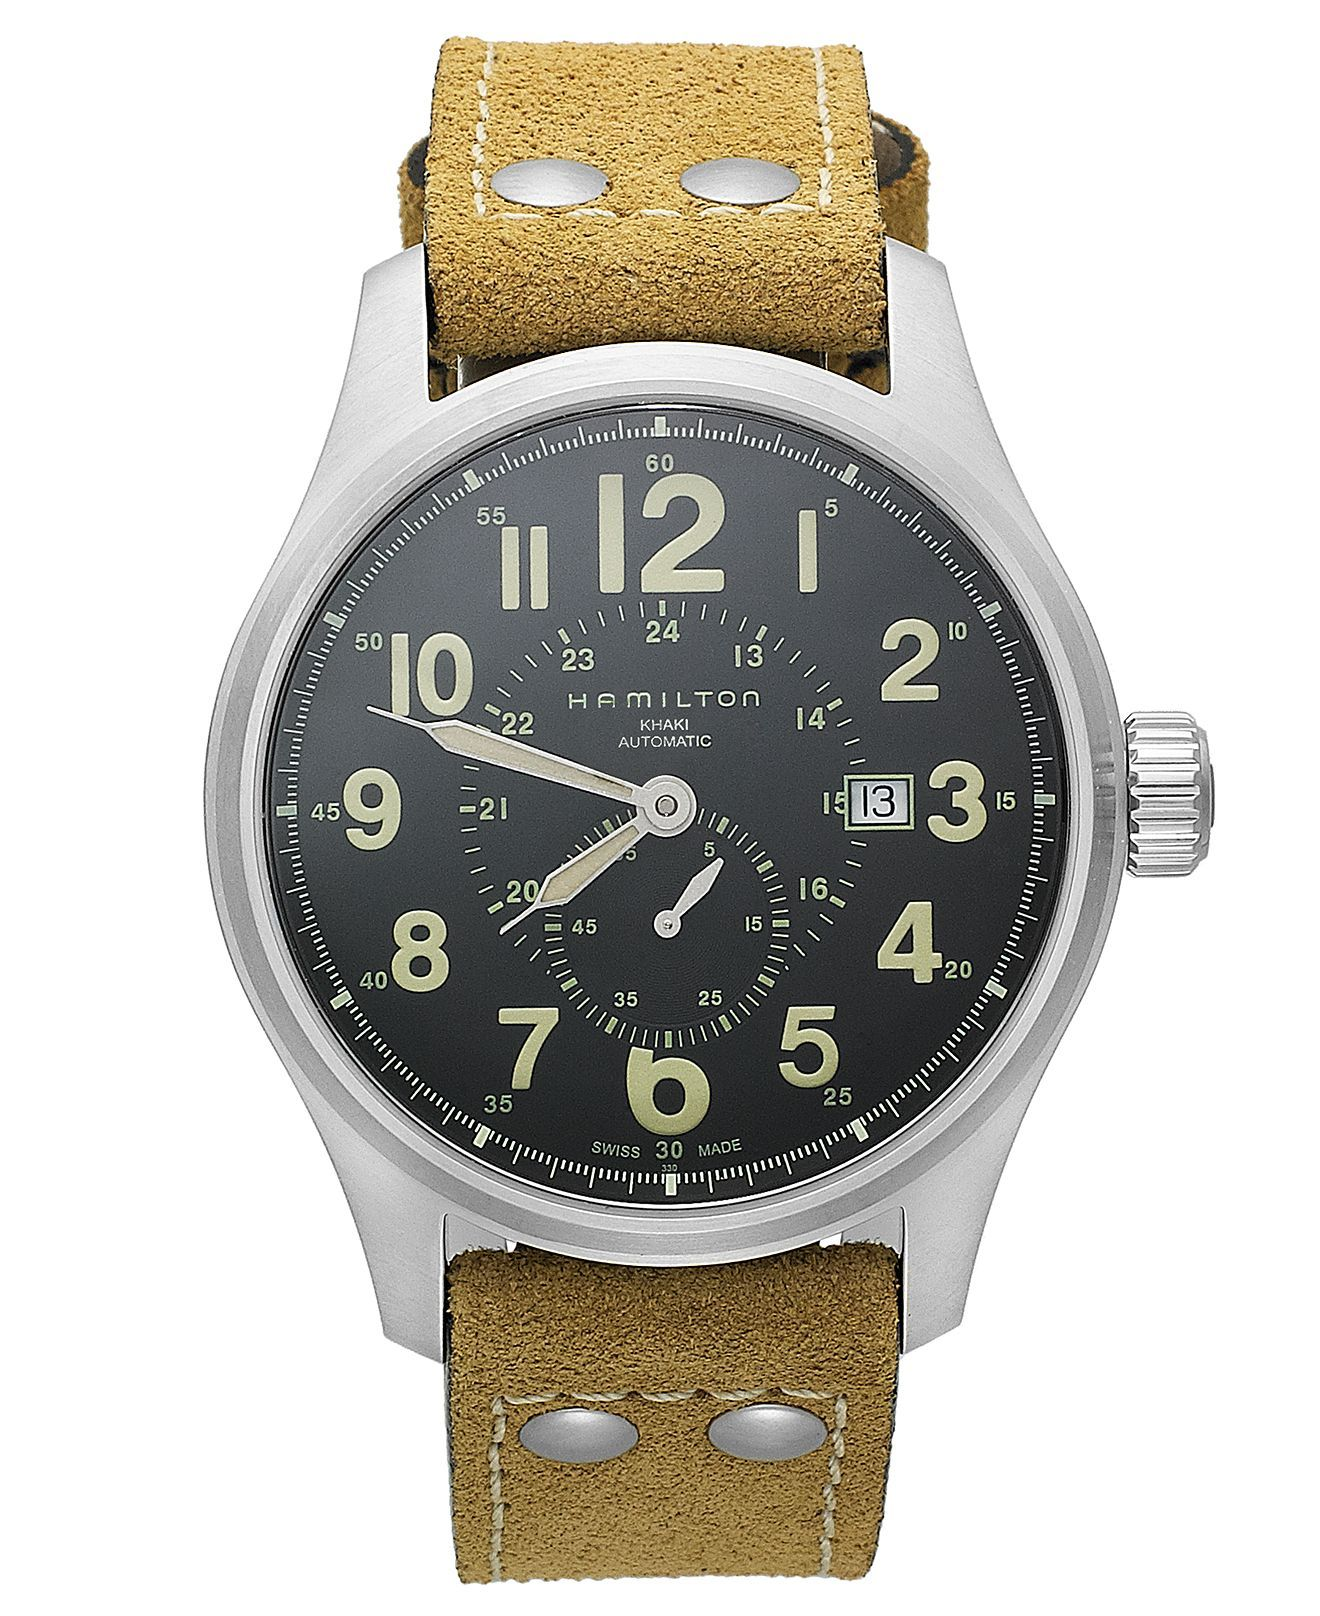 7c5fbdeda Hamilton Watch, Men's Swiss Automatic Khaki Field Officer Brown Leather  Strap 44mm H70655733 - All Watches - Jewelry & Watches - Macy's